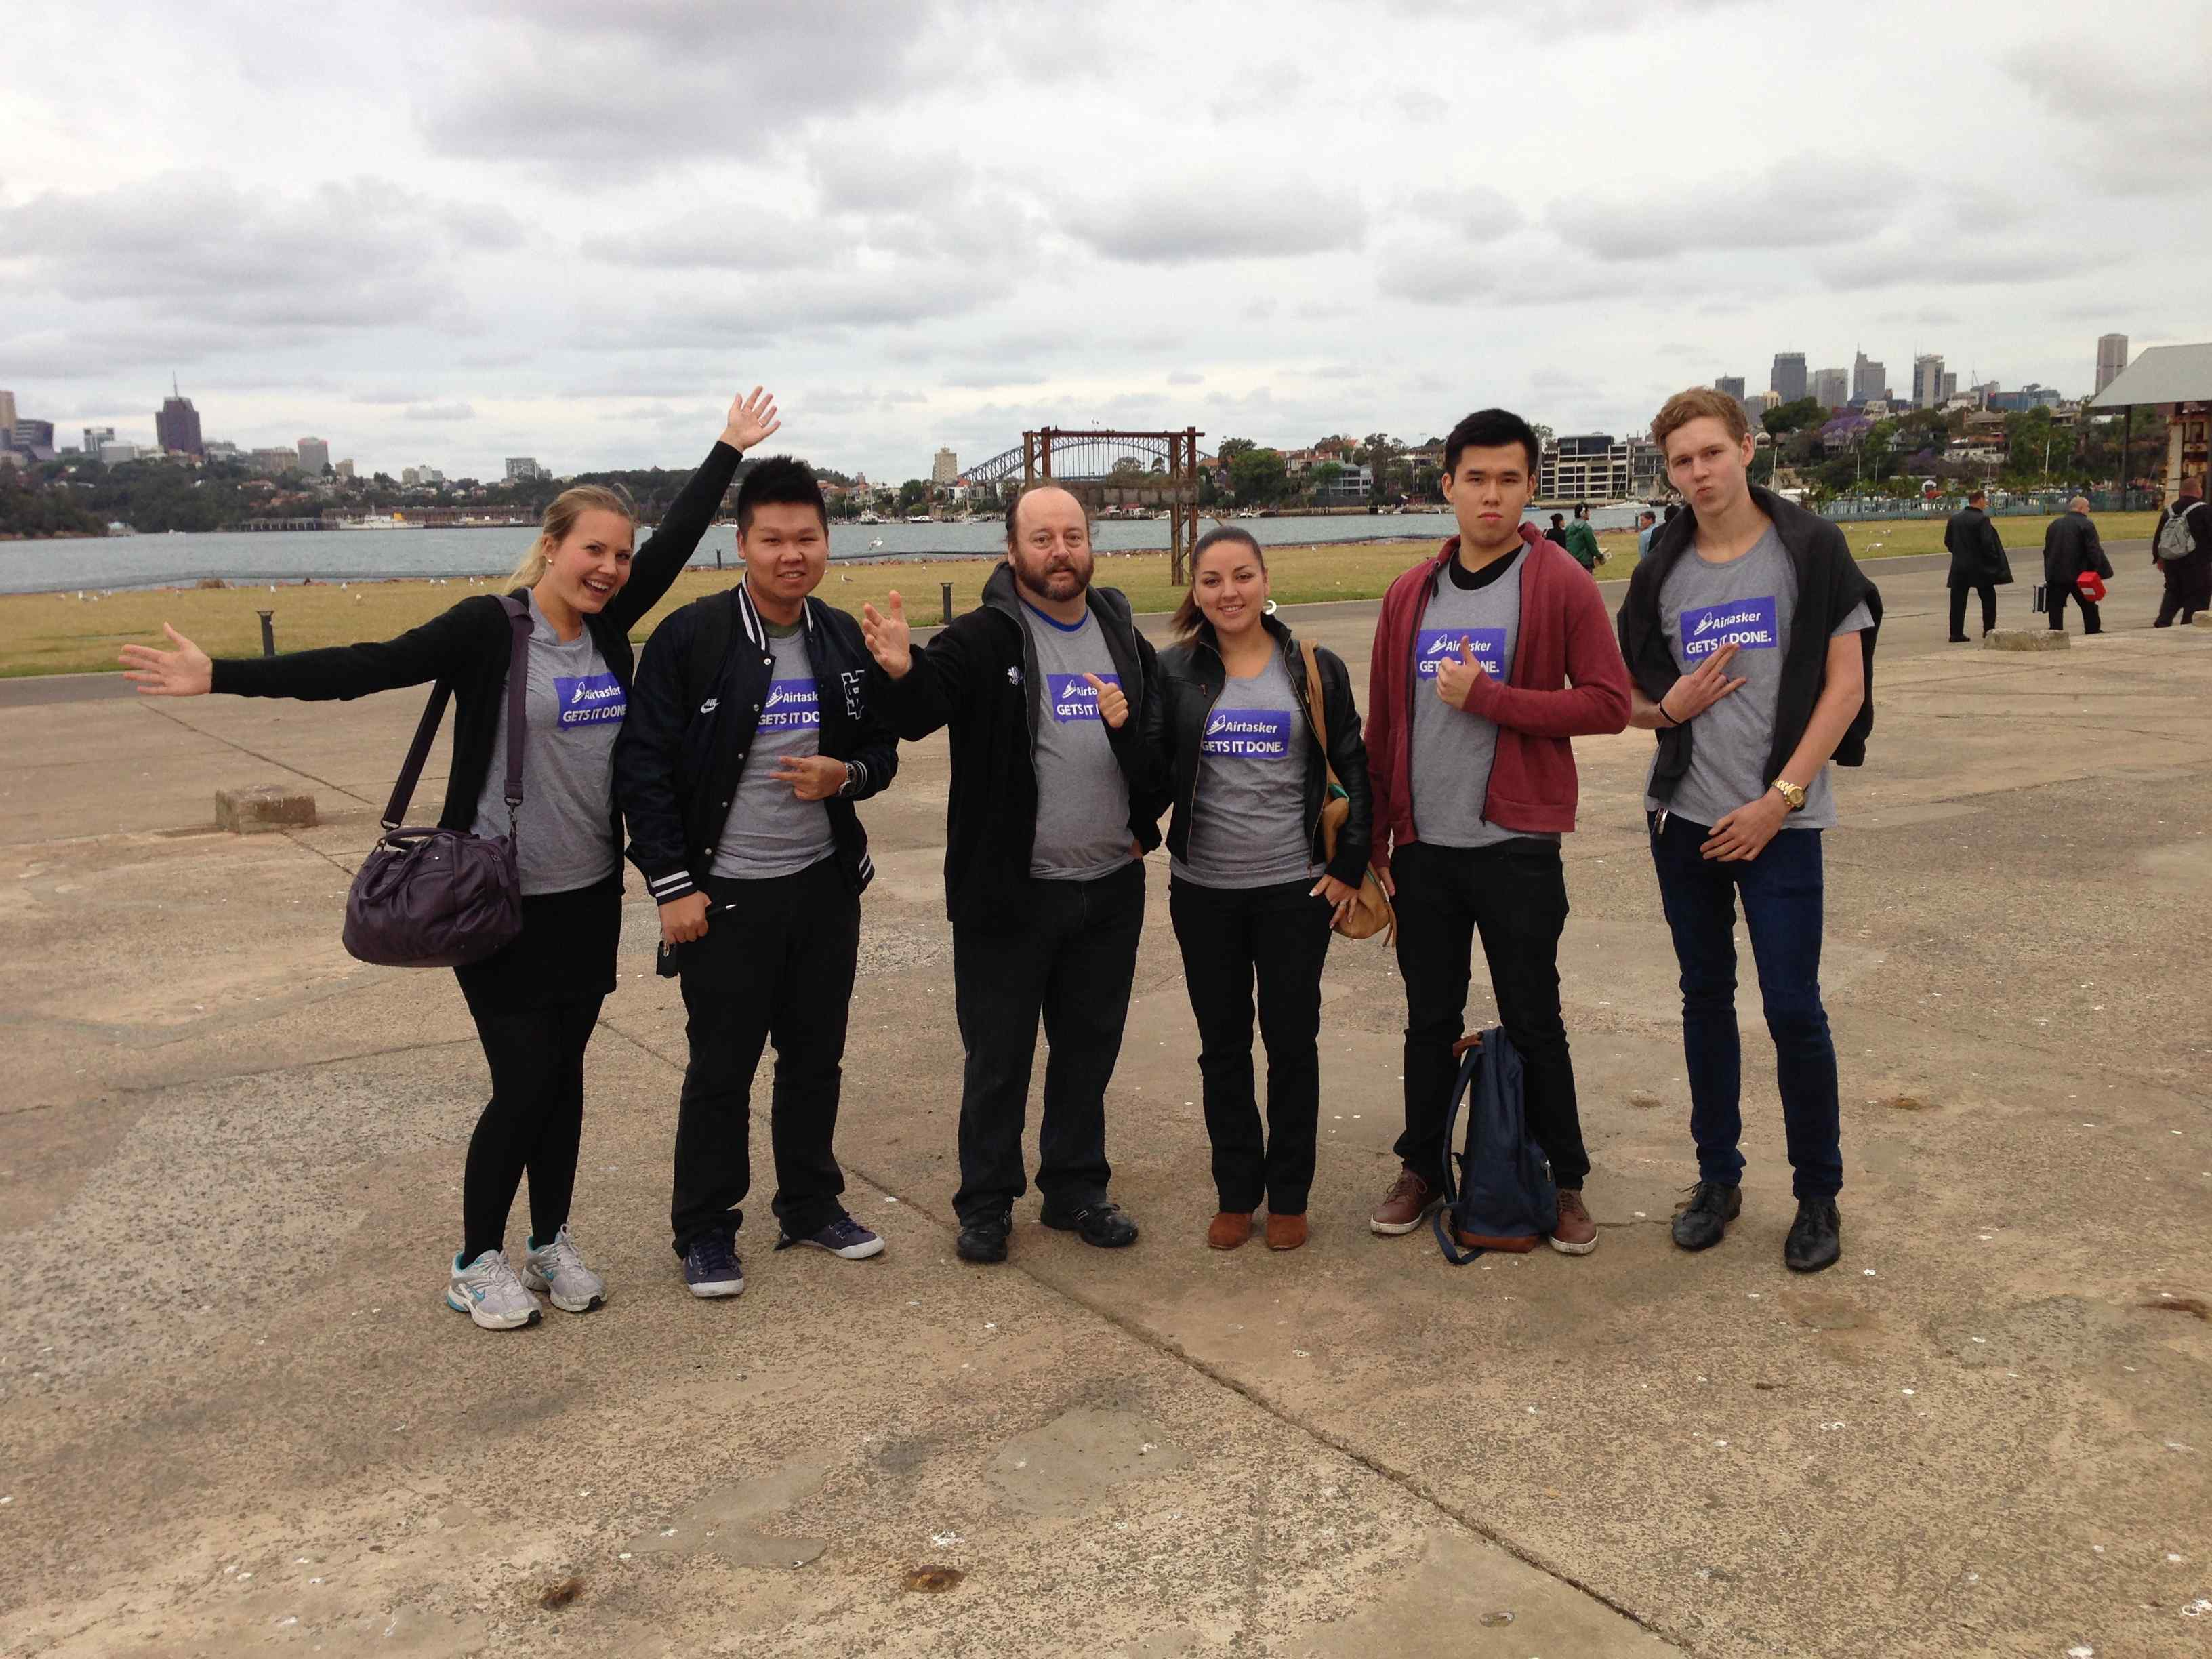 Airtasker runners help with Airbnb Sydney launch